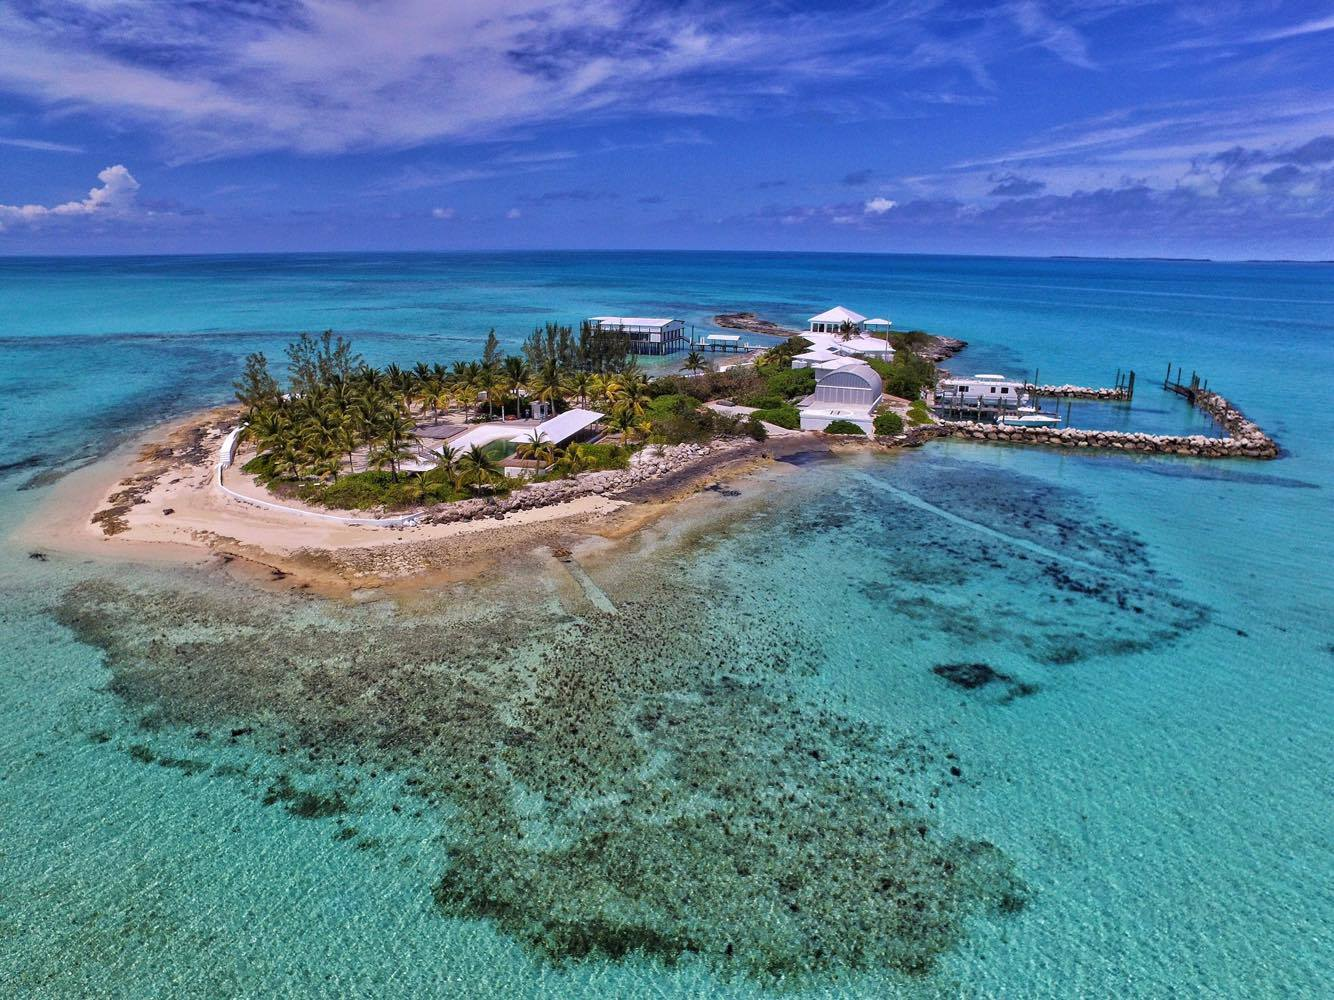 Isla privada por un Venta en Private Island North Eleuthera - Exclusive - Unique - Exciting Commercial Possibilities! Eleuthera, Bahamas